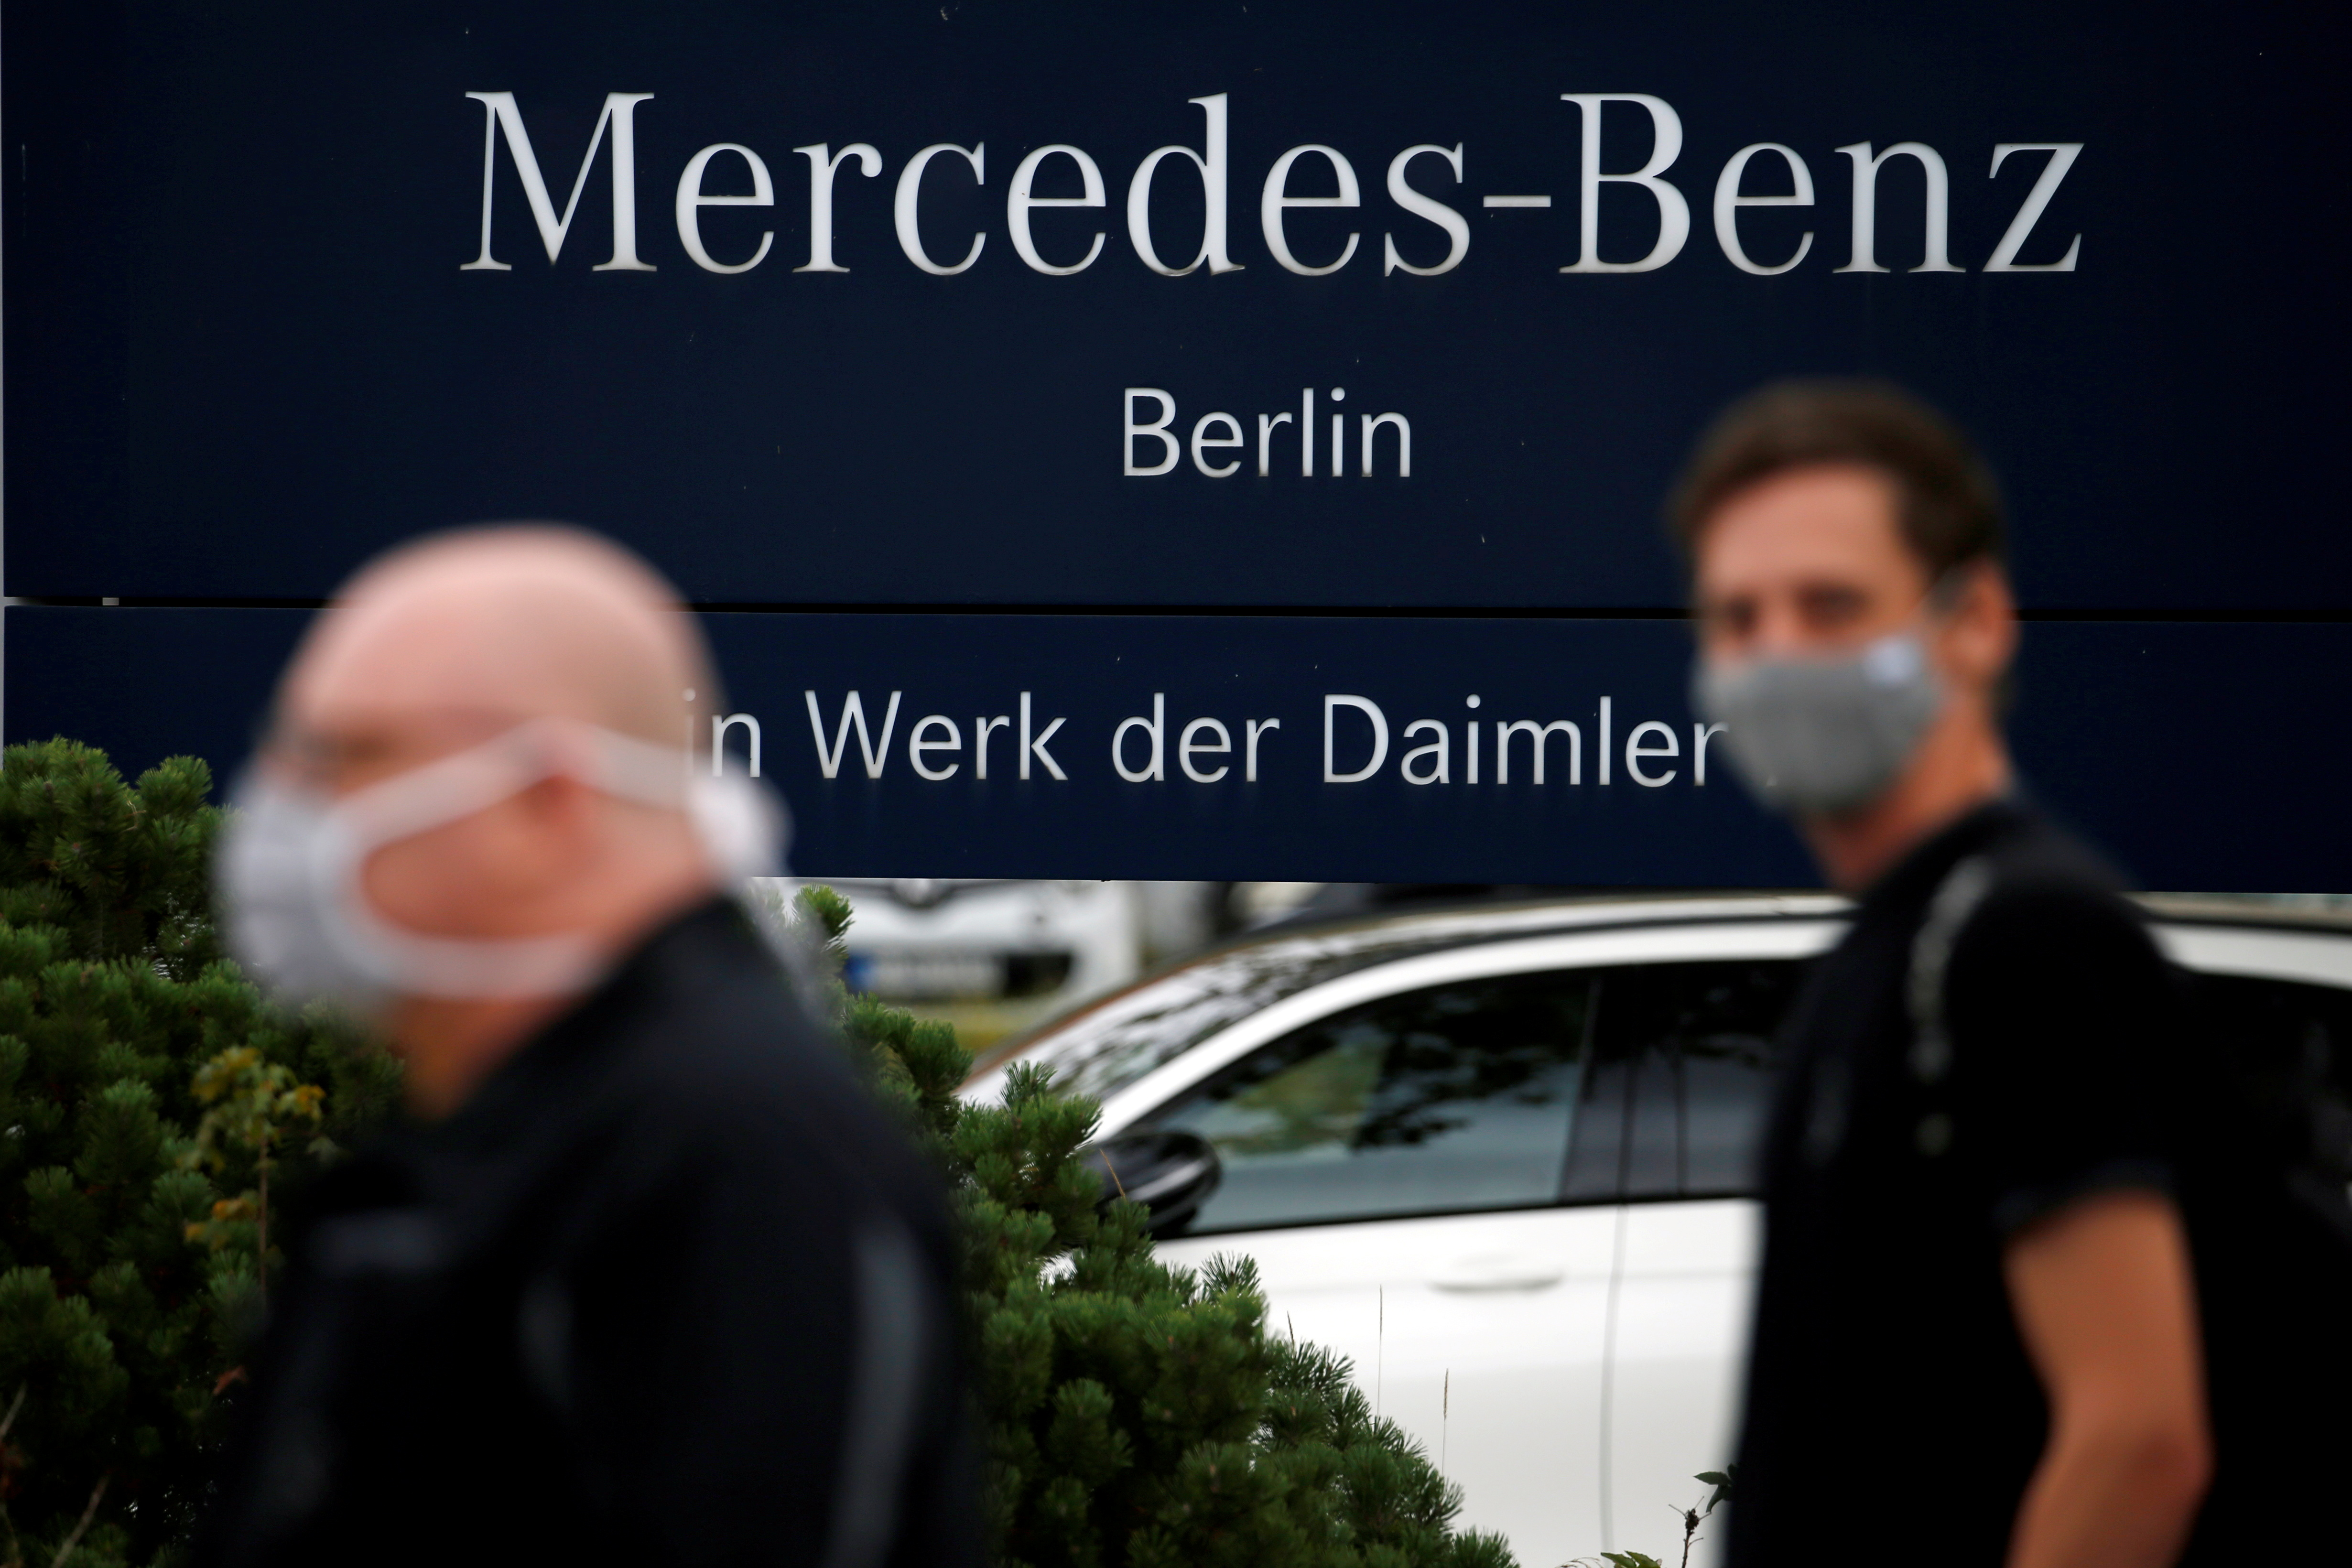 Daimler AG employees arrive to hold a meeting at the Mercedes-Benz Plant at Marienfelde in Berlin, Germany, September 24, 2020. REUTERS/Michele Tantussi/File Photo